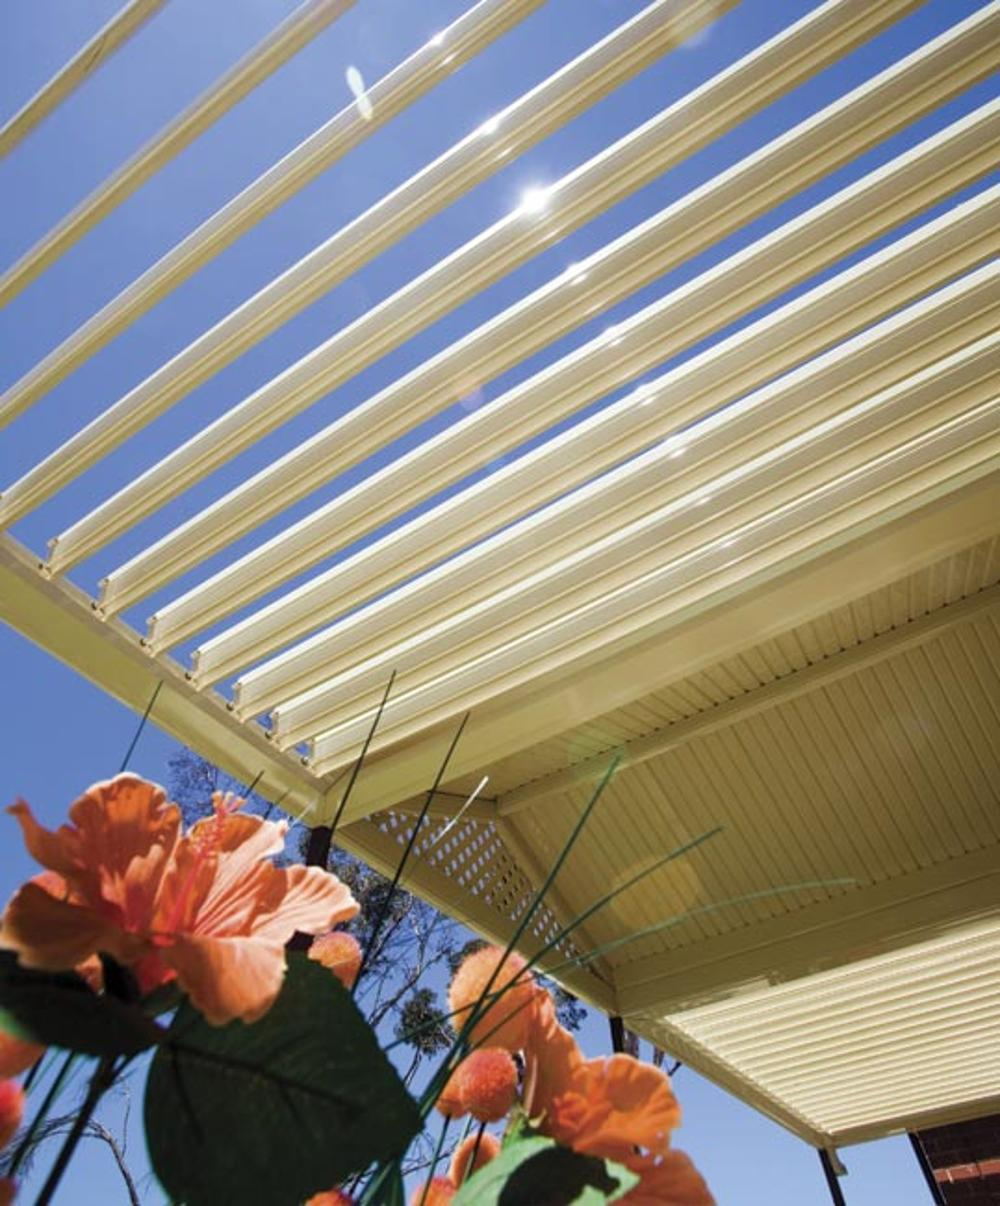 Opening Roofs Sydney Electric Awnings Solarguard Awnings